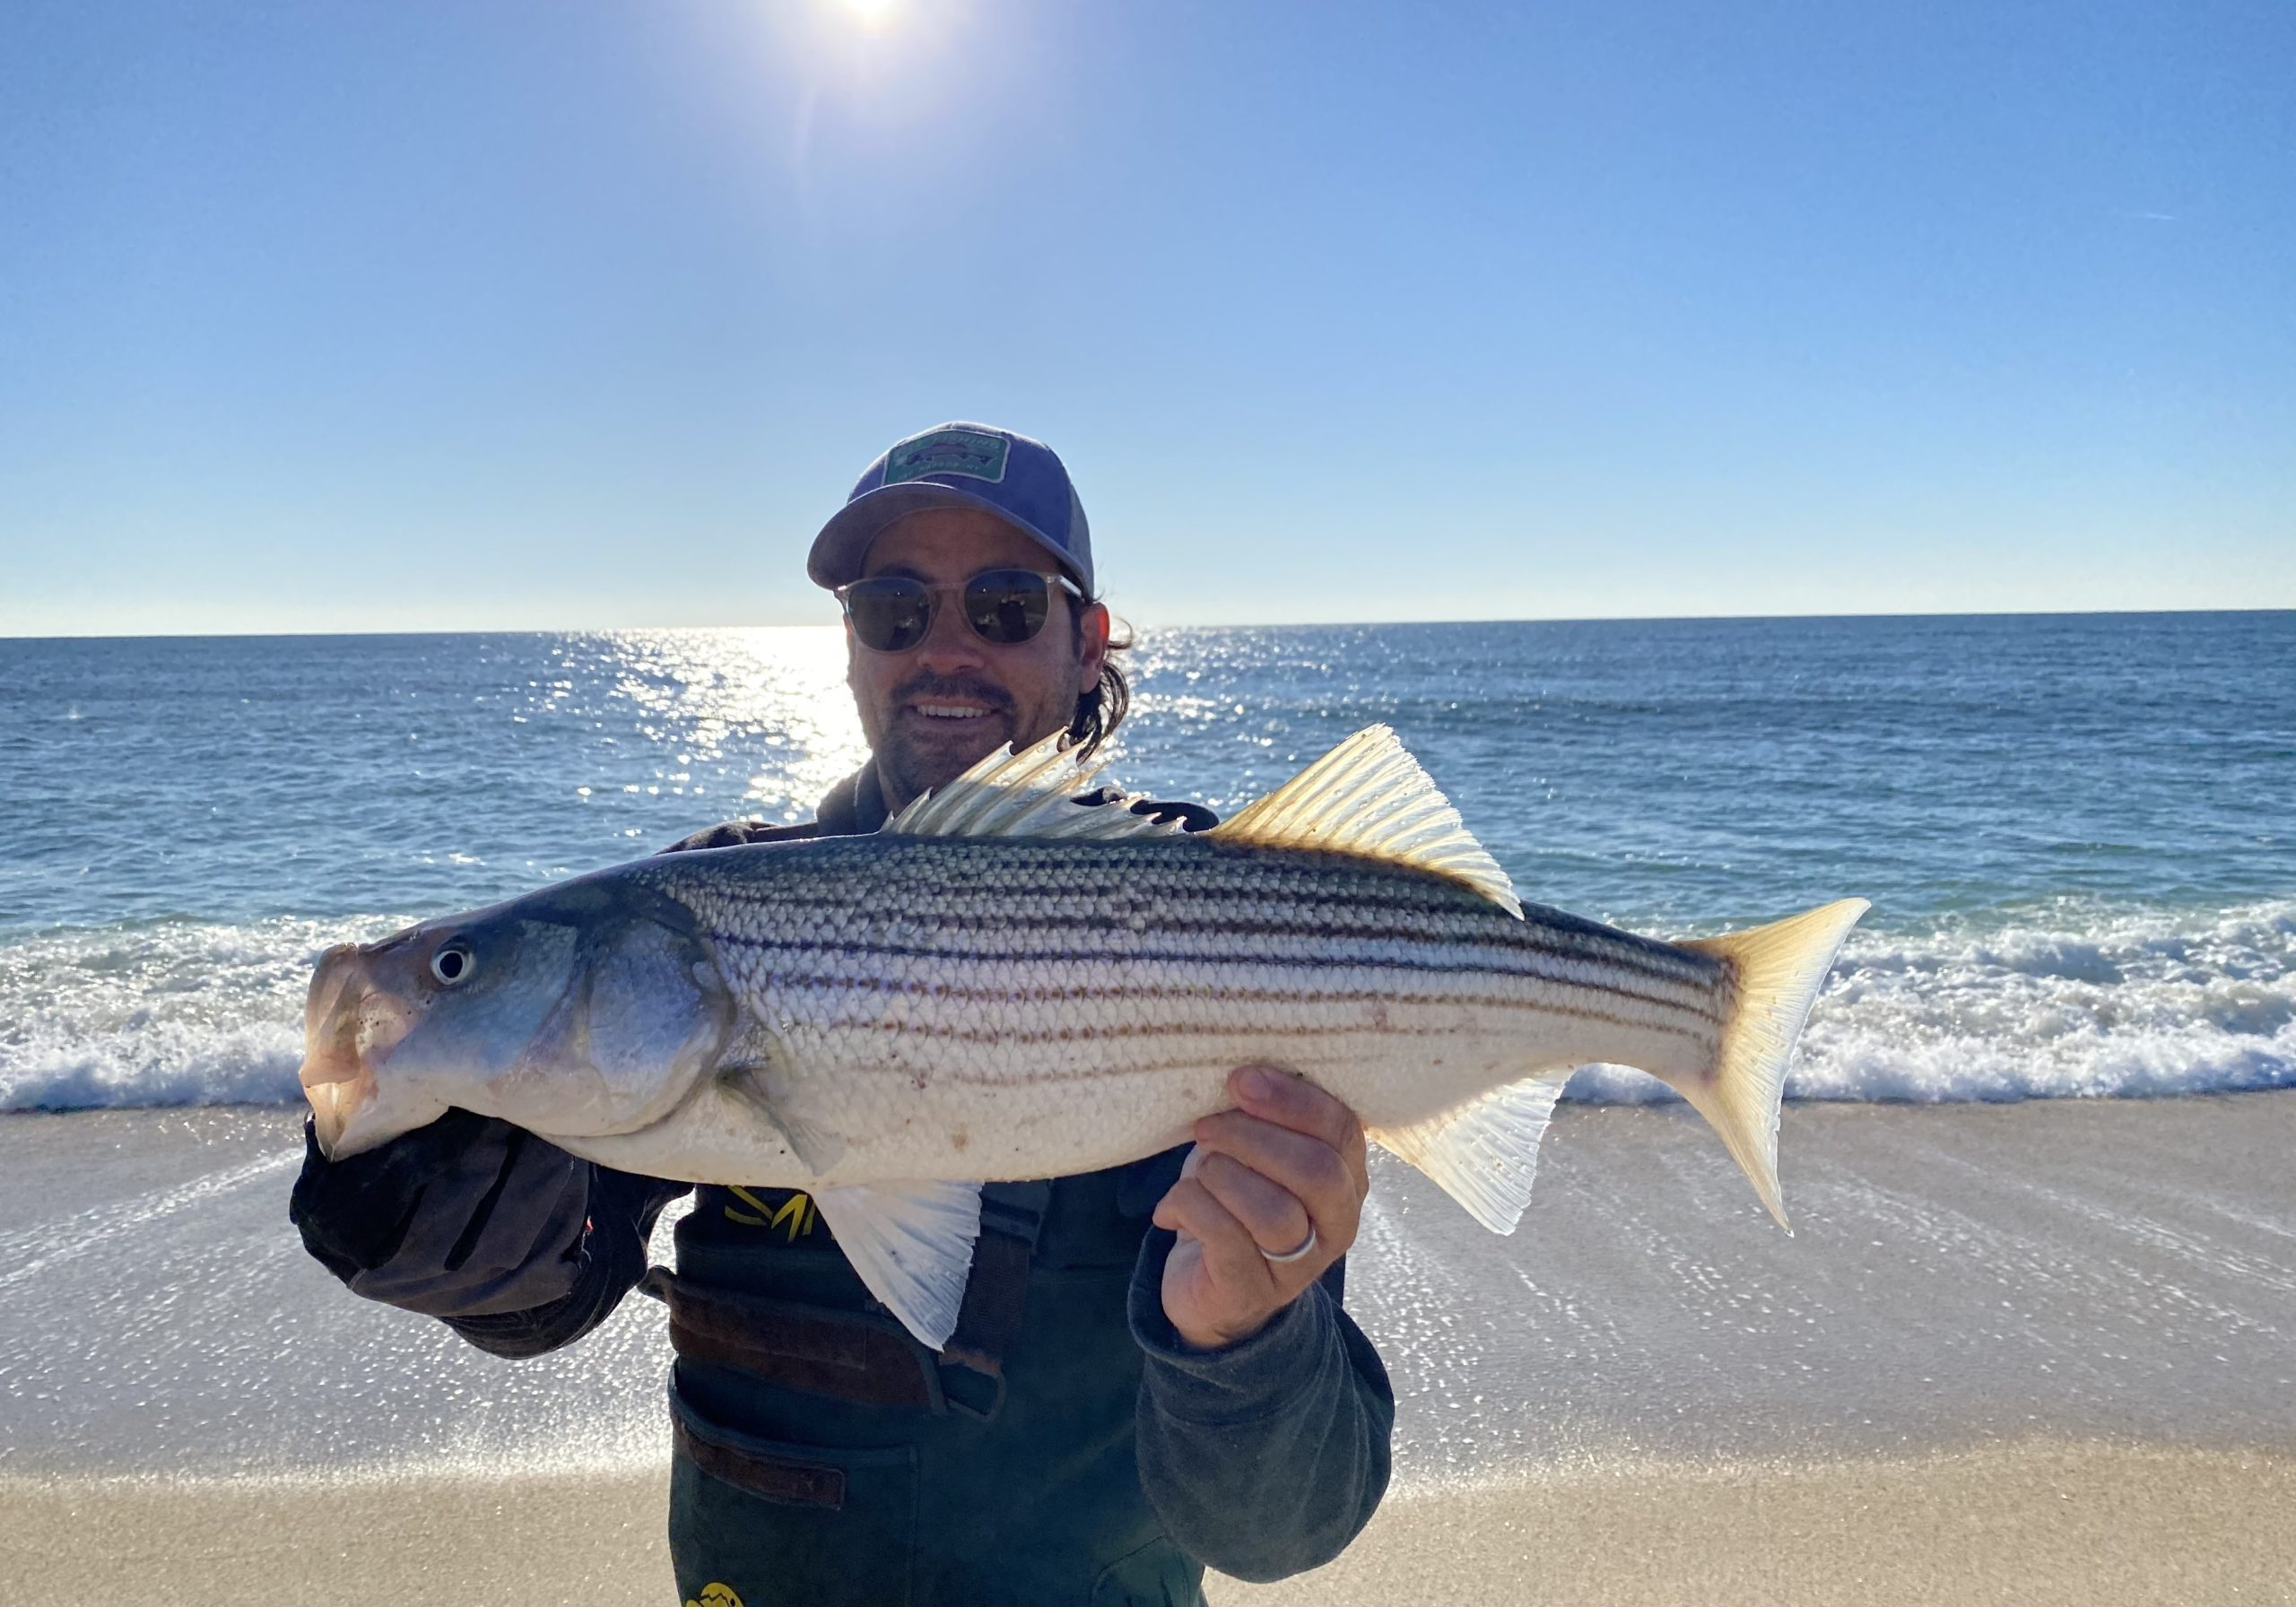 Striped Bass fishermen are being asked to weigh in on the future of striped bass management from now until early April. Pictured is Steve Lobosco of Sag Harbor with one of the late season stripers from local beaches.